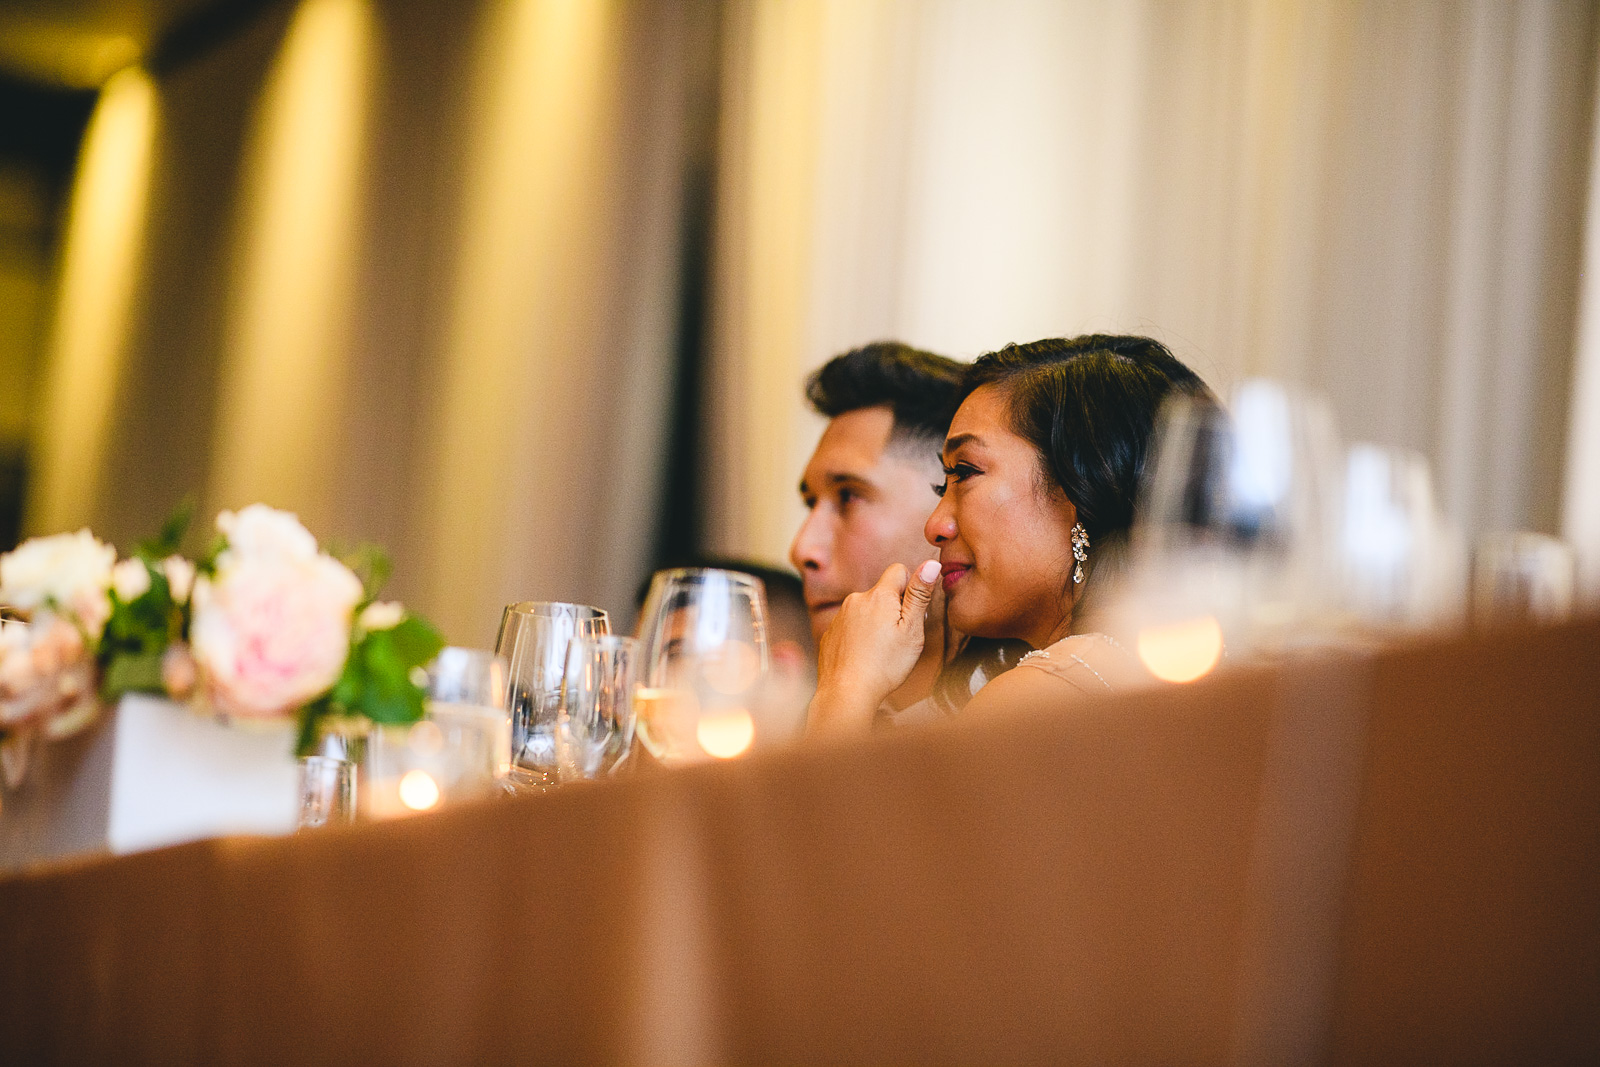 80 renaissance hotel chicago wedding photos - Renaissance Hotel Chicago Wedding Photos // Francine + RJ